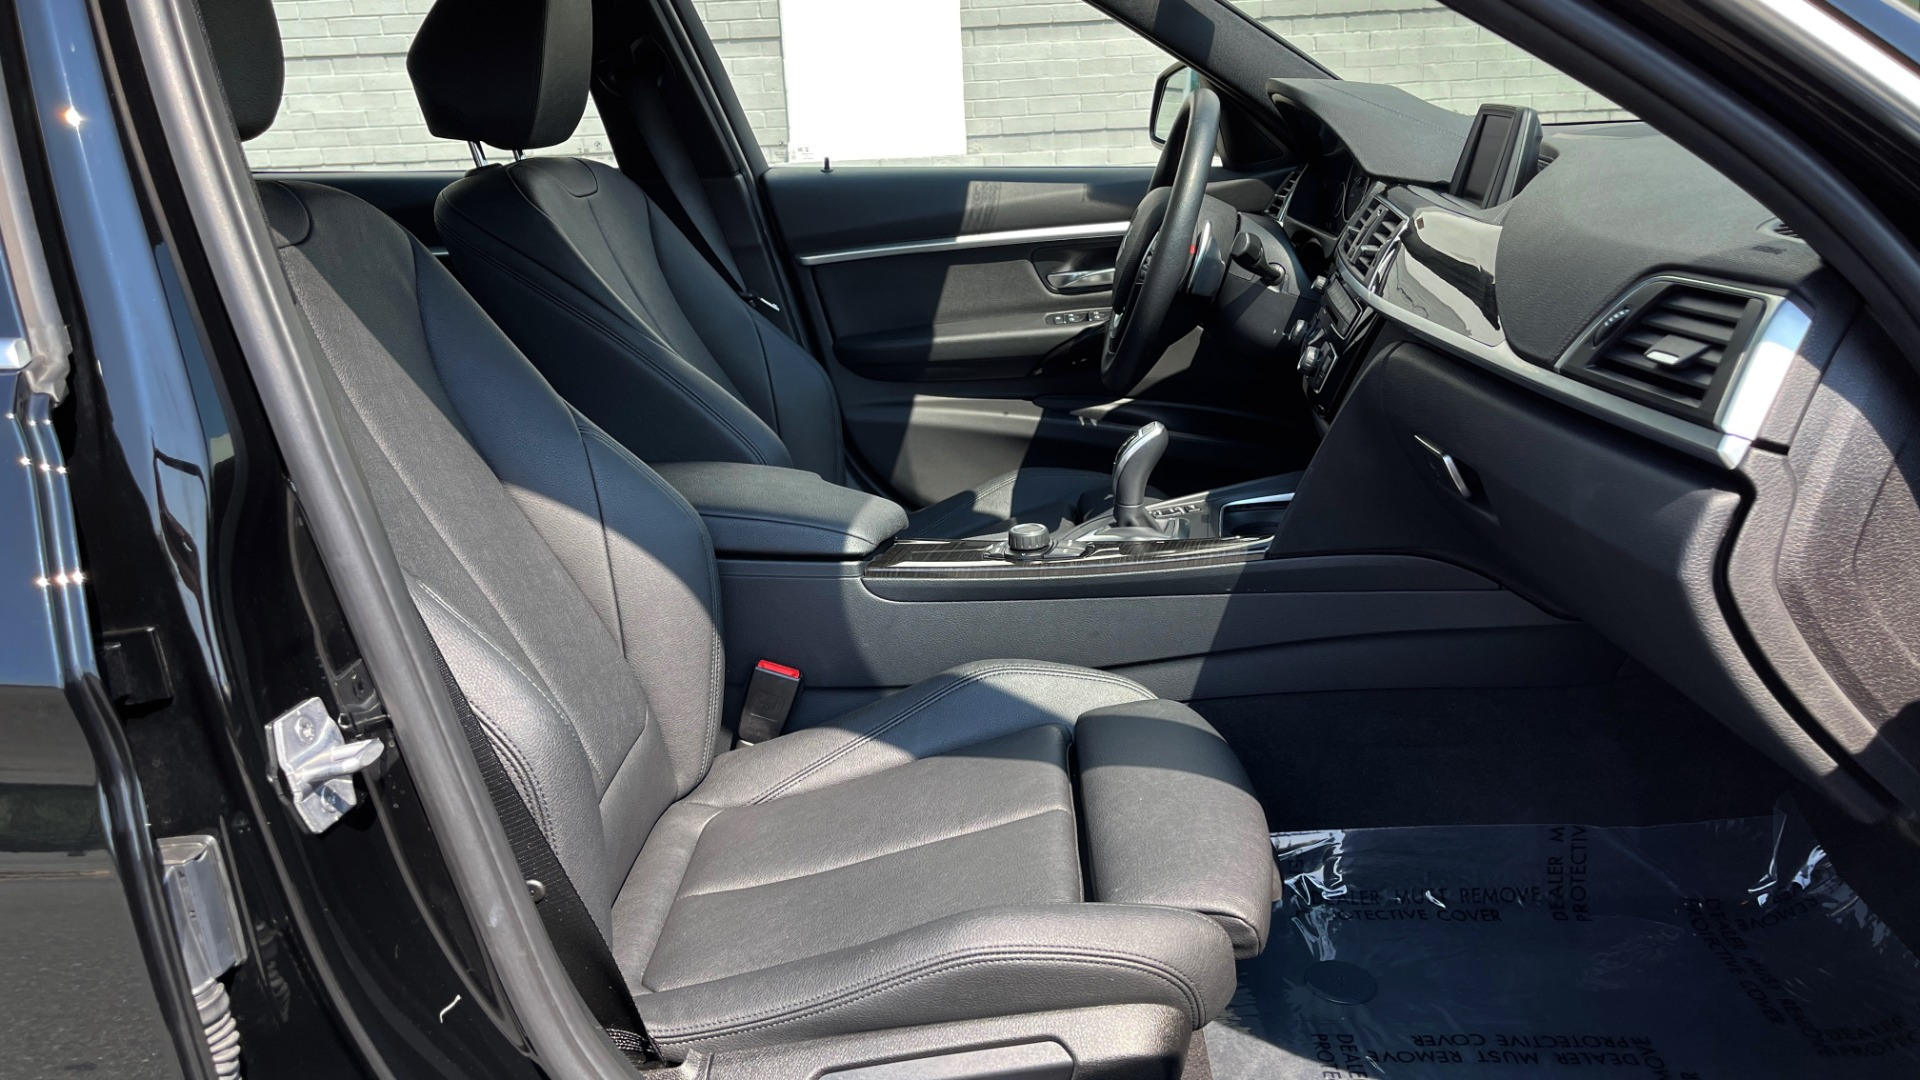 Used 2018 BMW 3 SERIES 330I XDRIVE / CONV PKG / SUNROOF / HTD STS / ABSD / REARVIEW for sale $30,695 at Formula Imports in Charlotte NC 28227 69